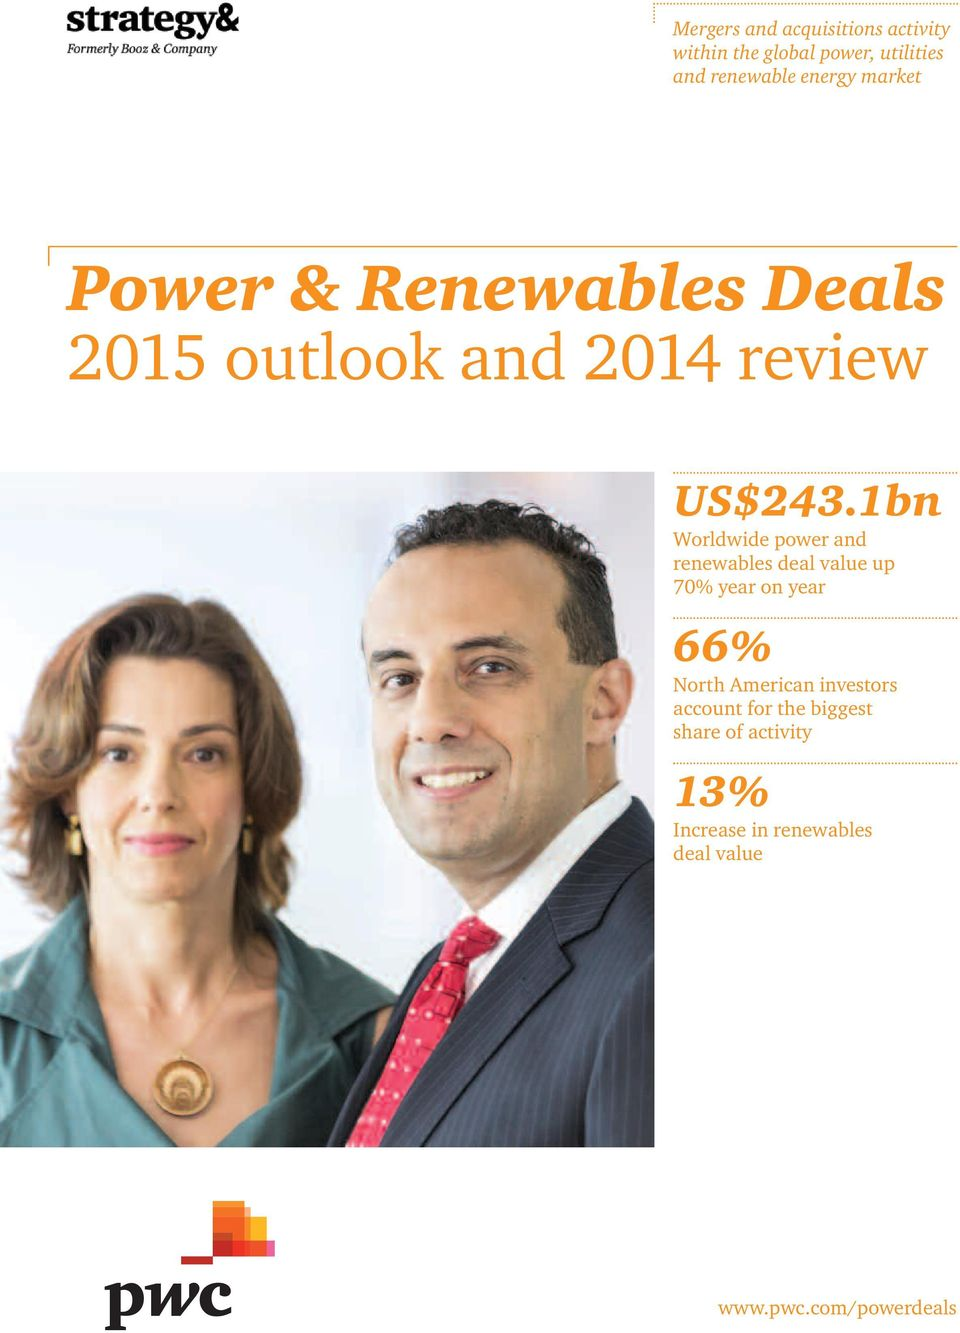 1bn Worldwide power and renewables deal value up 70% year on year 66% North American